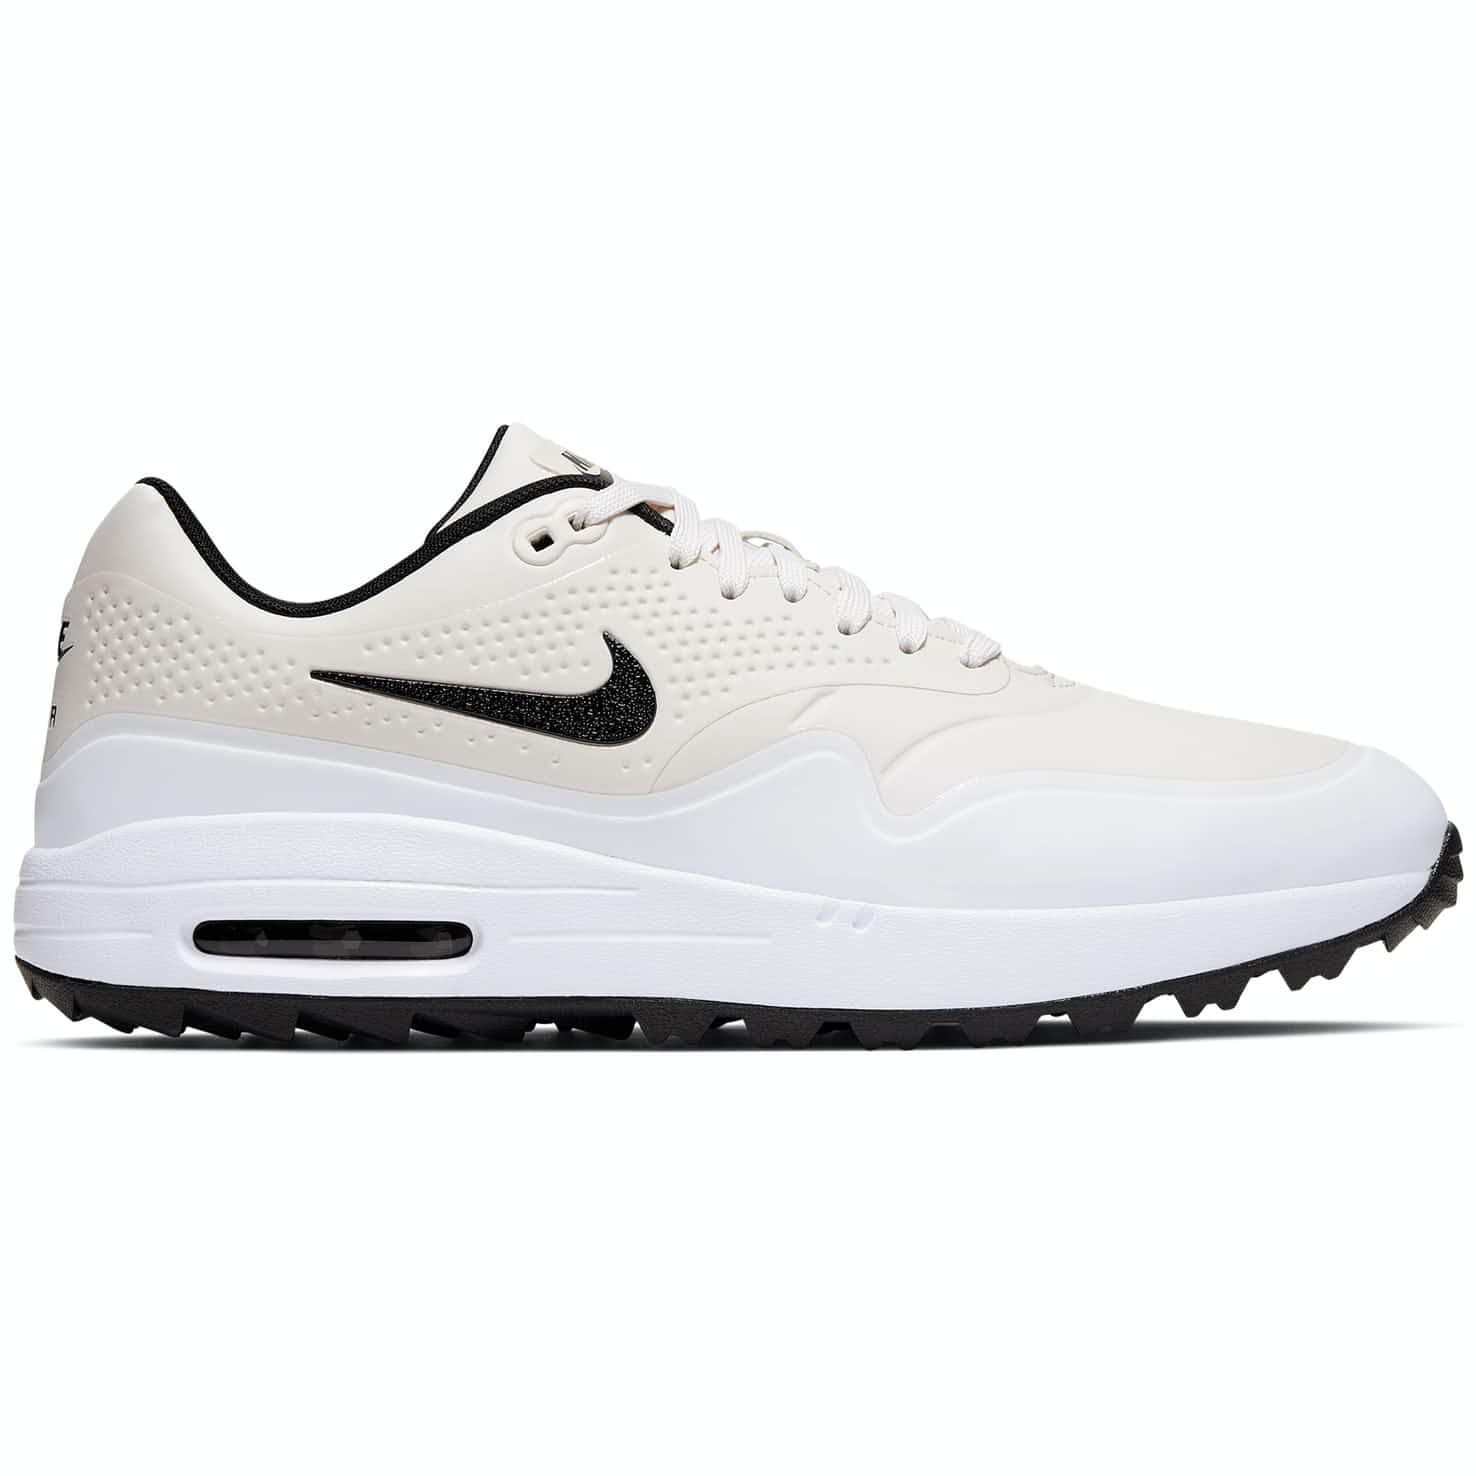 Air Max 1G Phantom/Black/White - W19